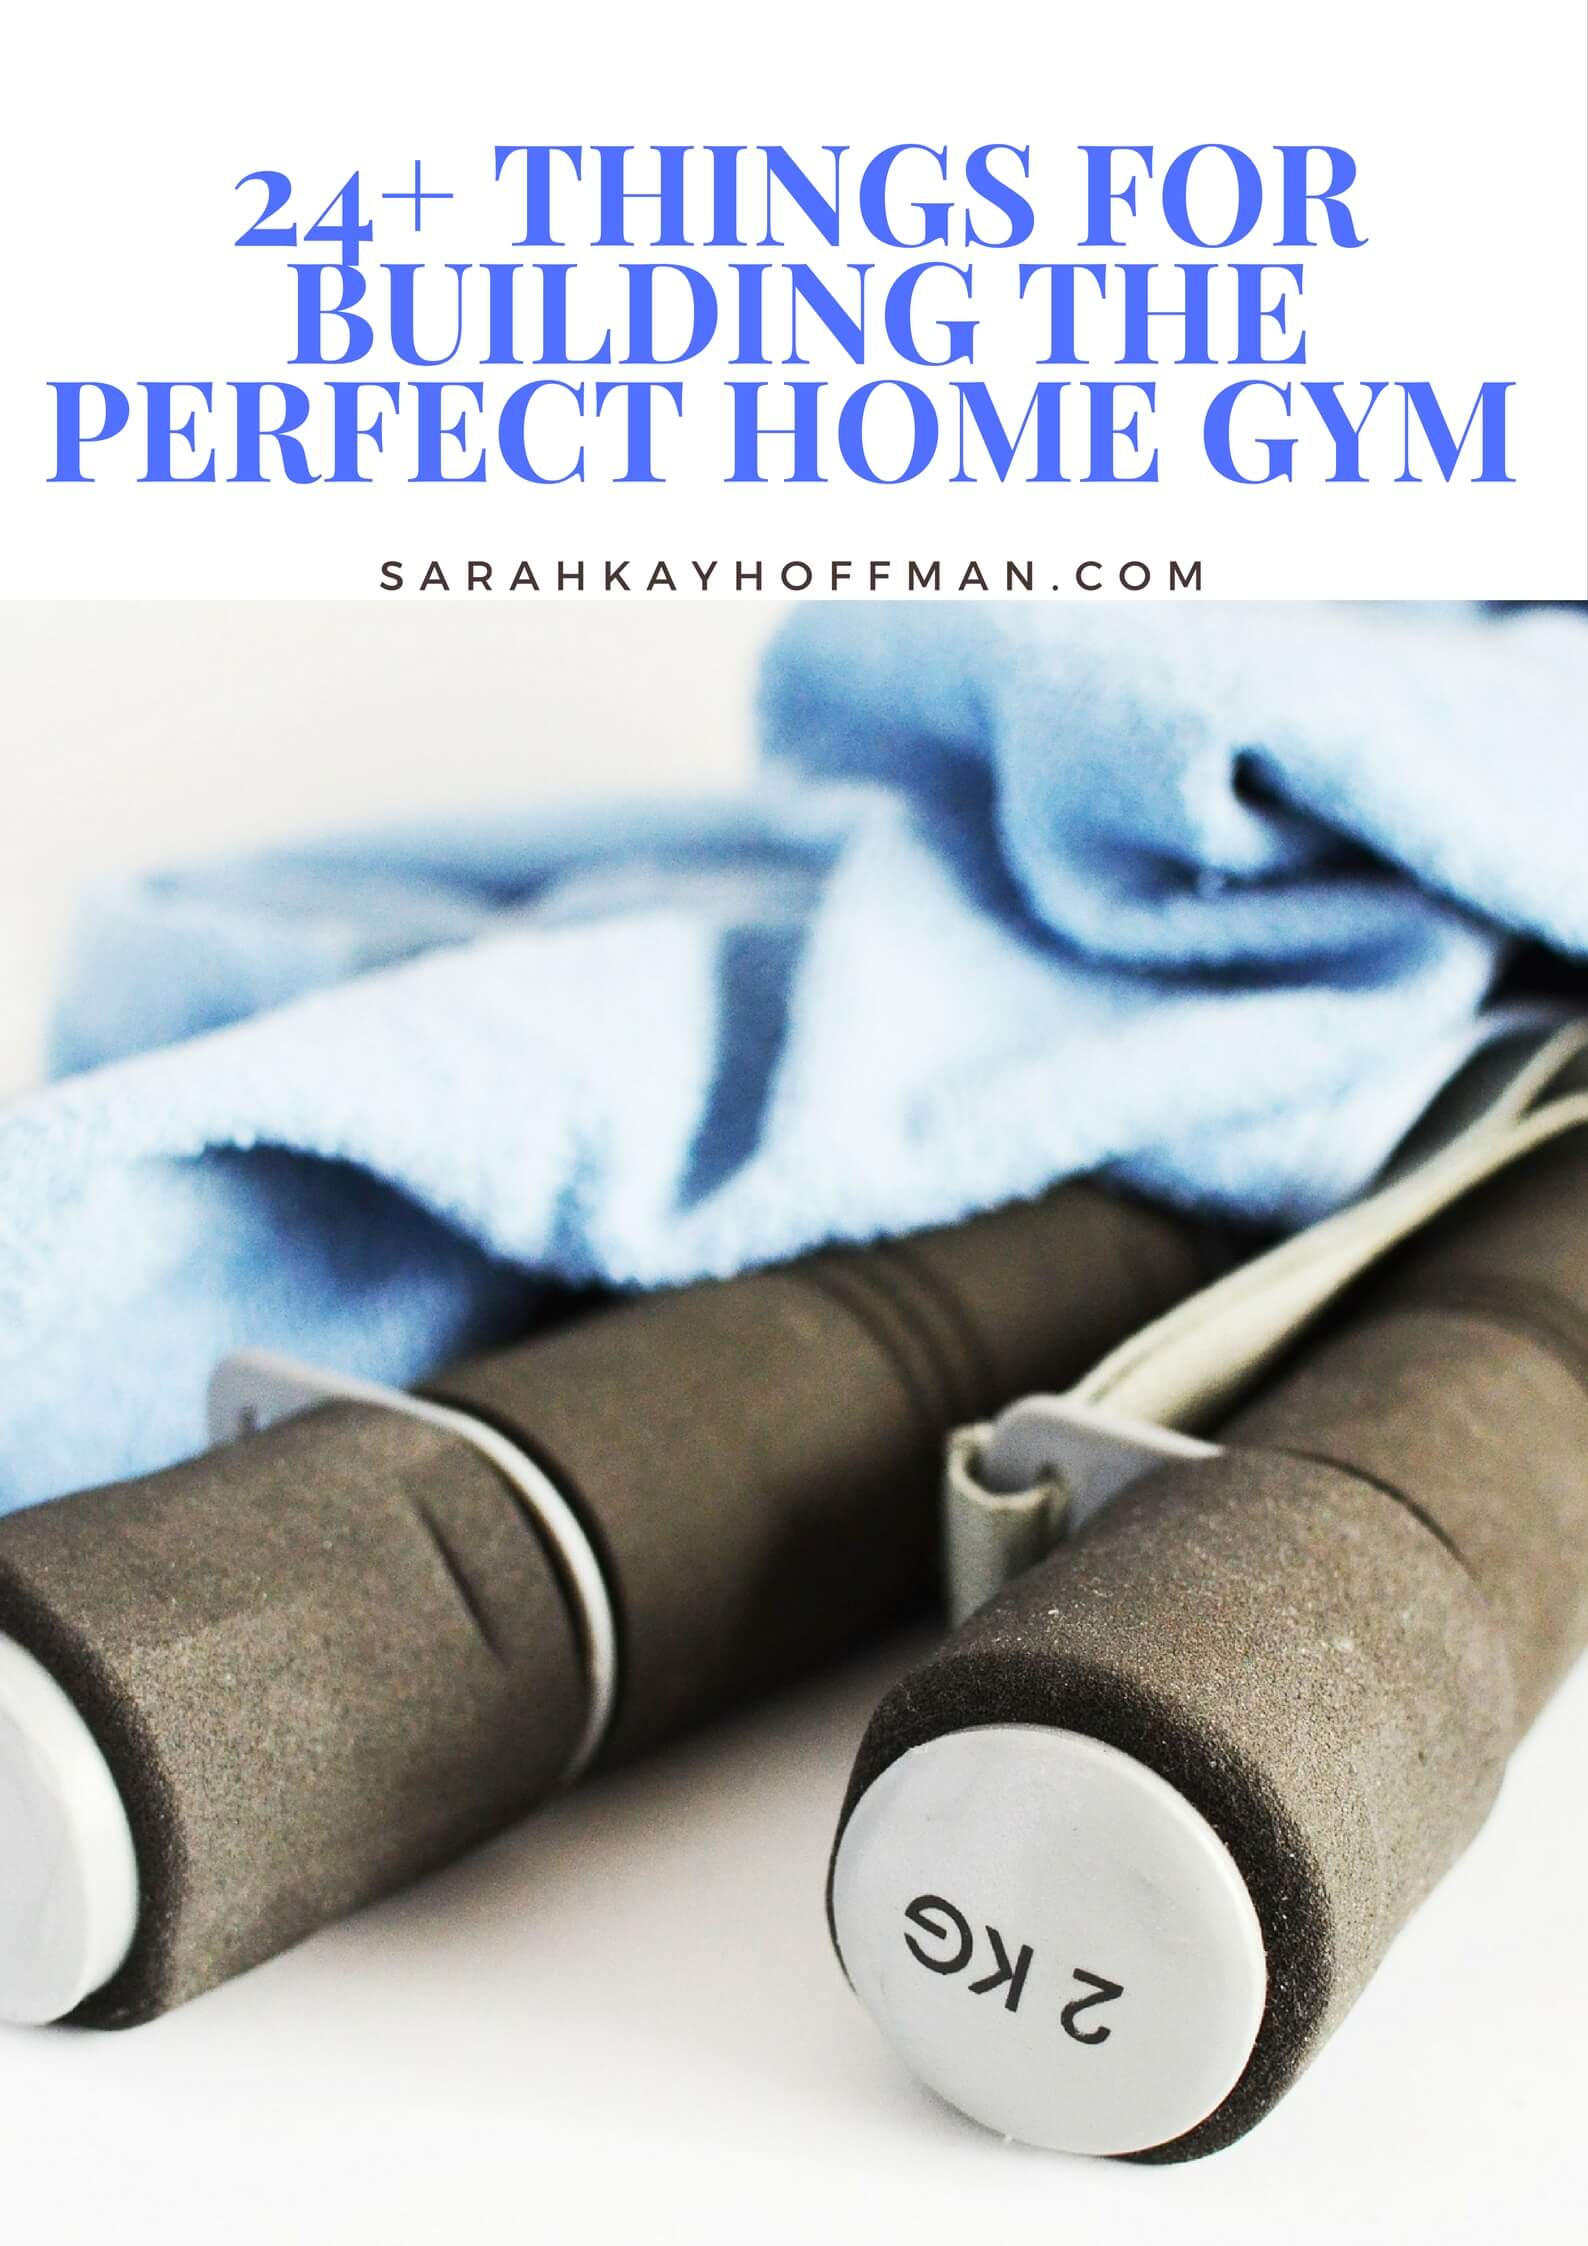 How to Build the Perfect Home Gym 24+ Things for Building the Perfect Home Gym sarahkayhoffman.com